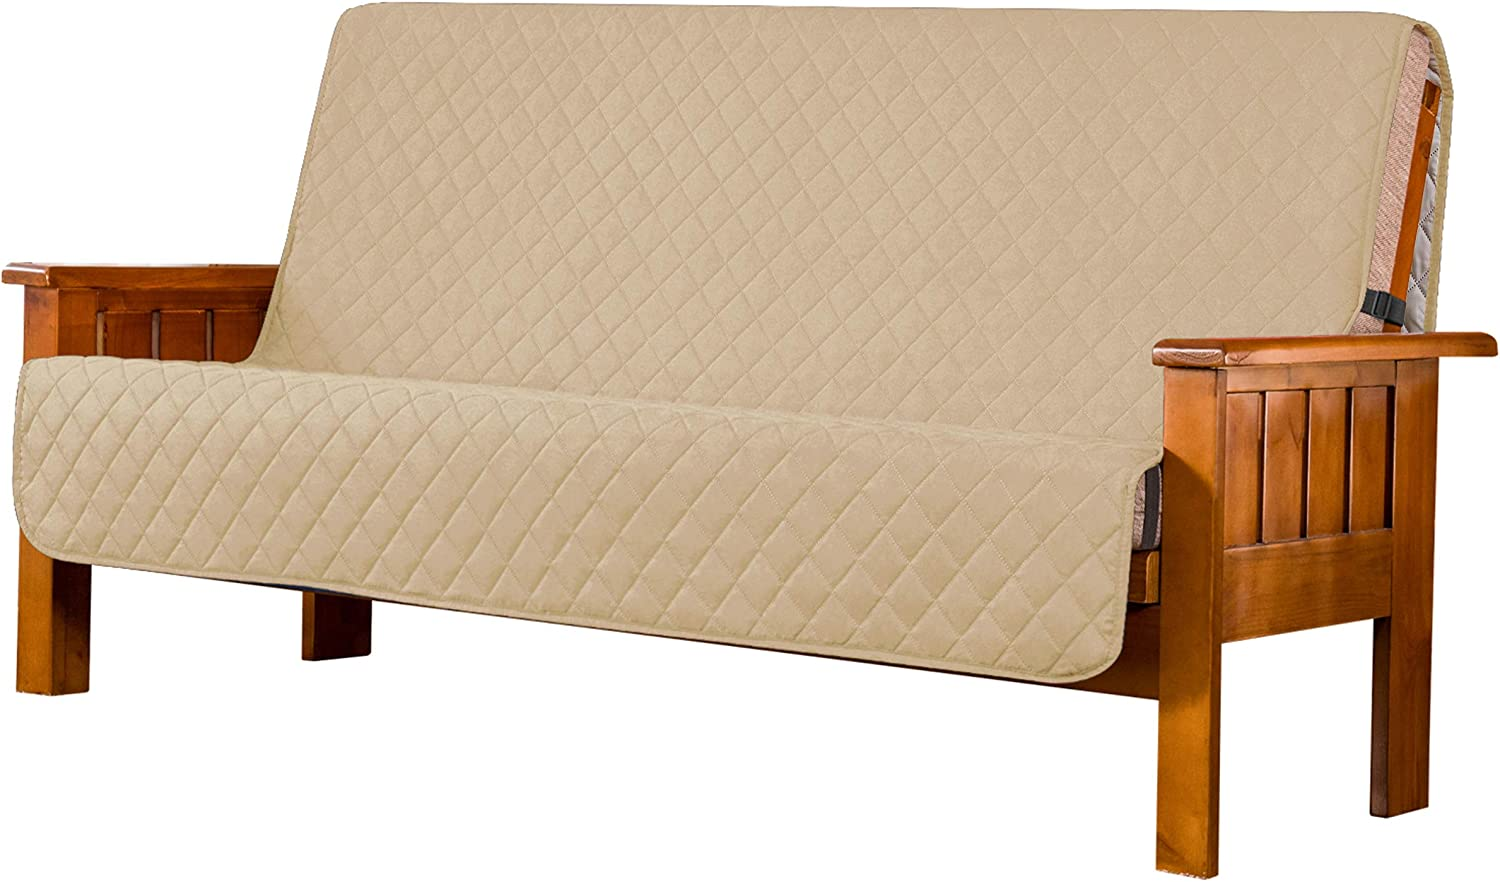 Subrtex Futon Slipcover Quilted Futon Cover Armless Sofa Slipcover Washable Furniture Protector for Futon Daybed Couch Slip Cover with Elastic Adjustable Strap for Pets and Kids (Sand)